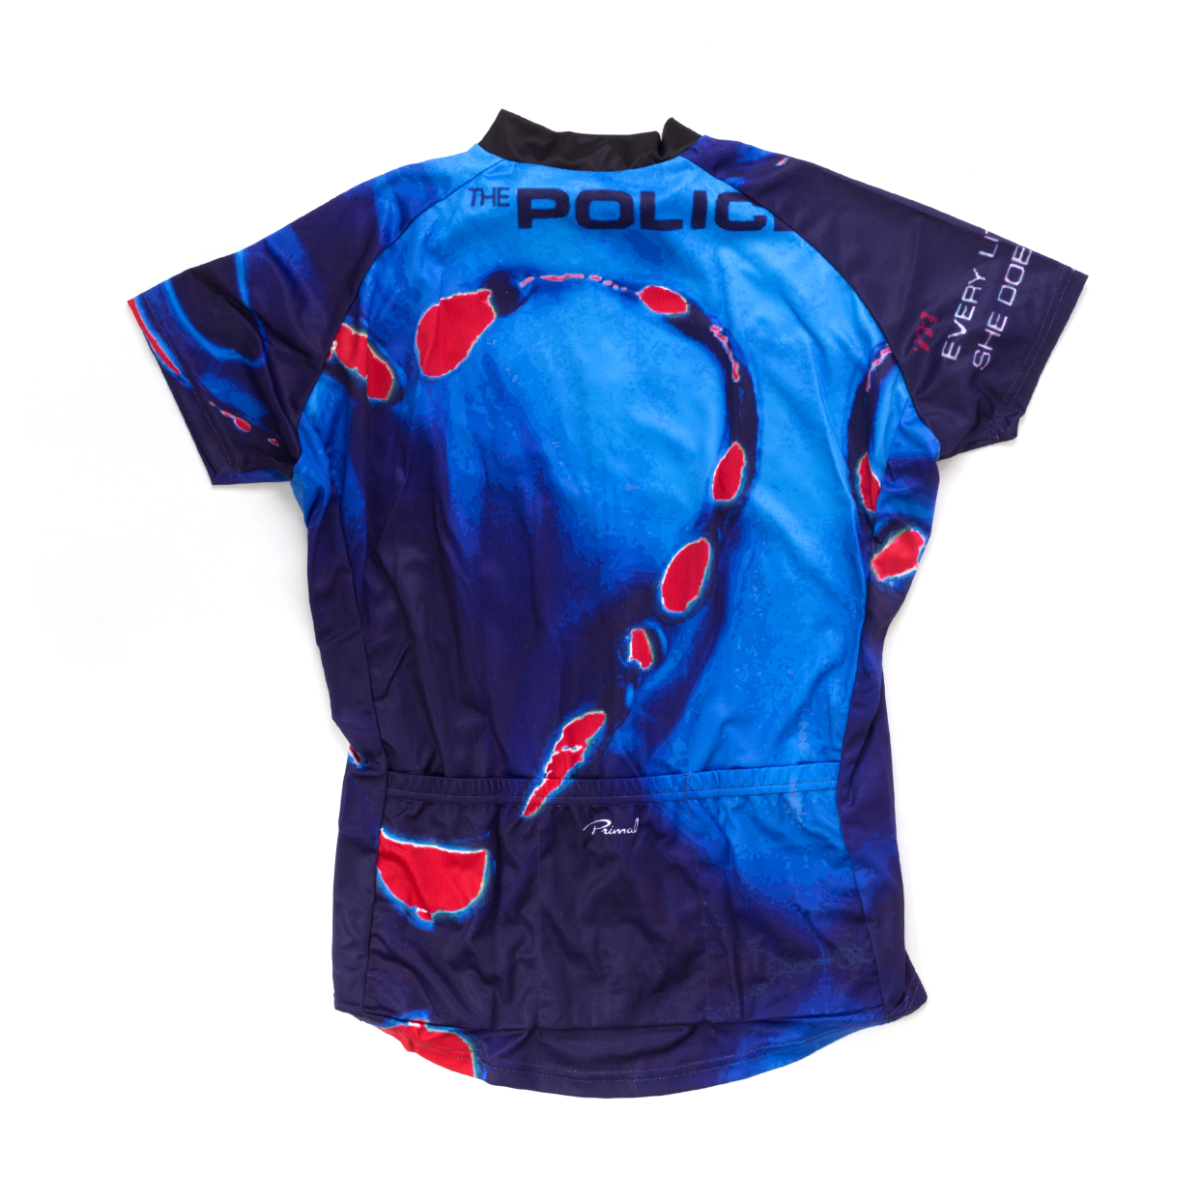 The Police Every Little Thing Cycling Jersey